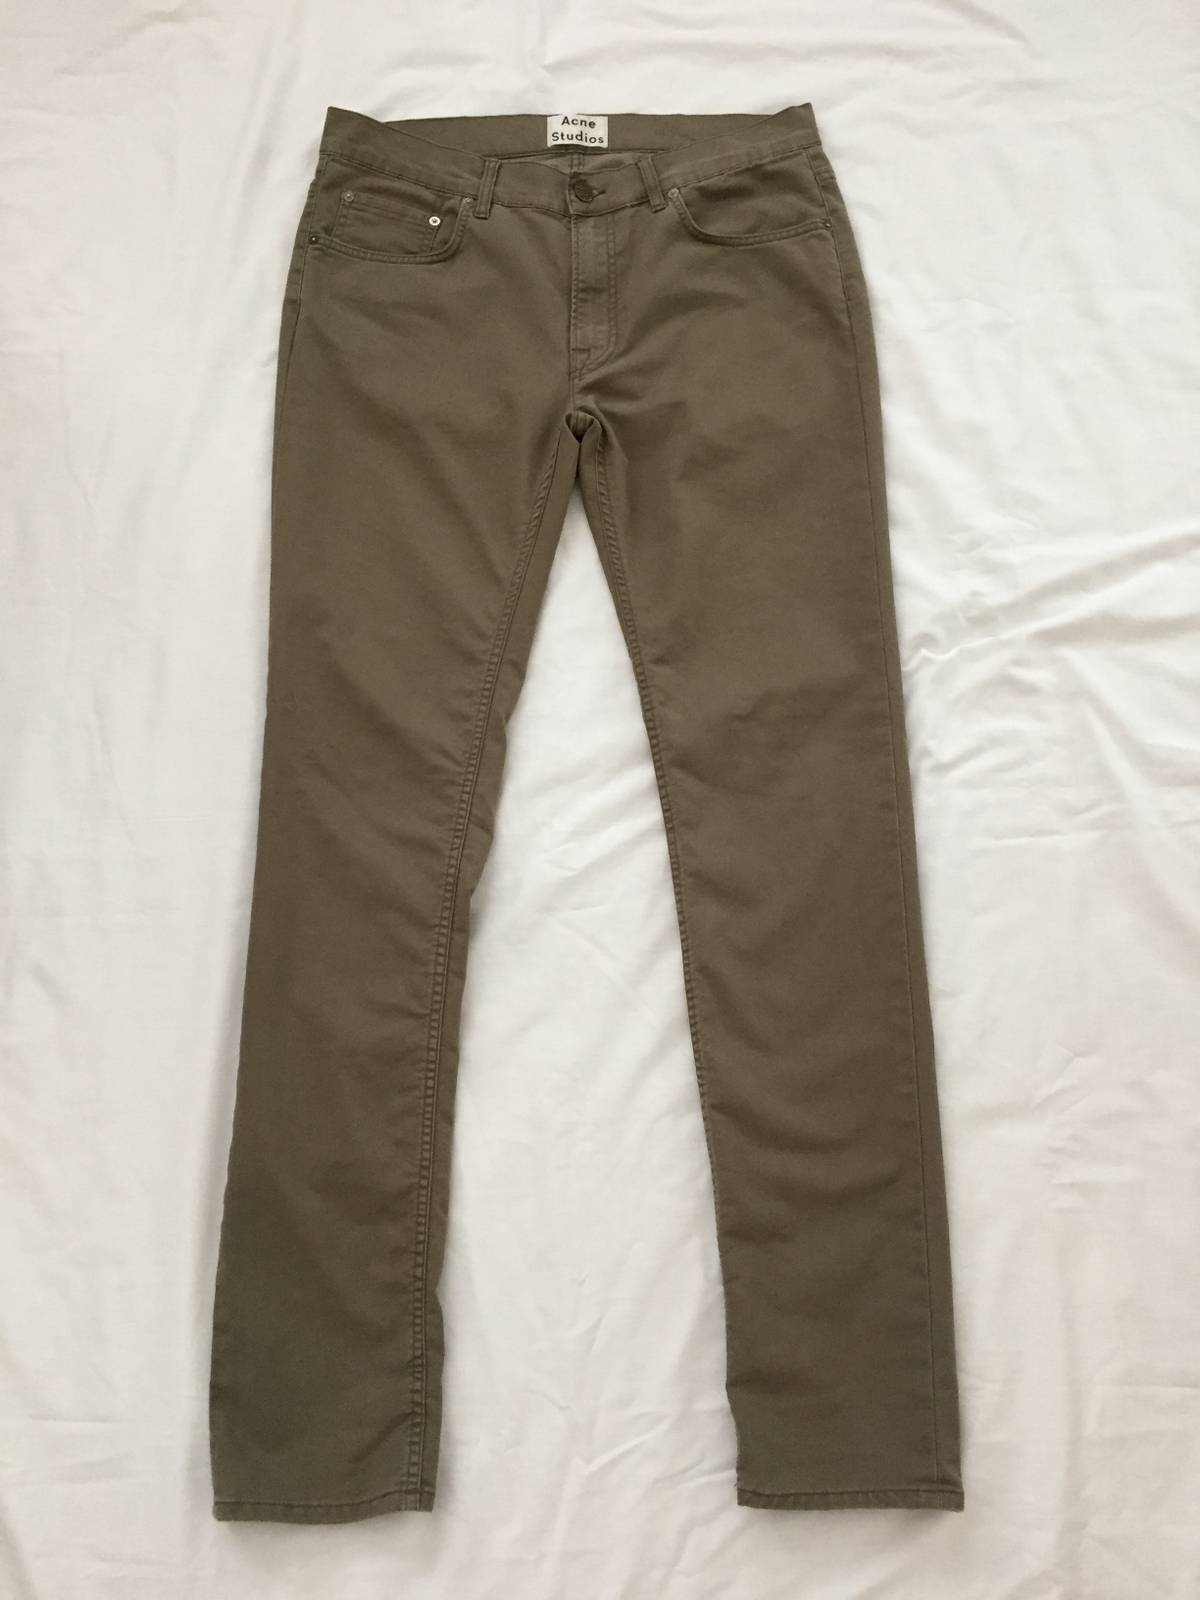 Acne Studios Ace Ups Aloe Size 36 - Casual Pants for Sale